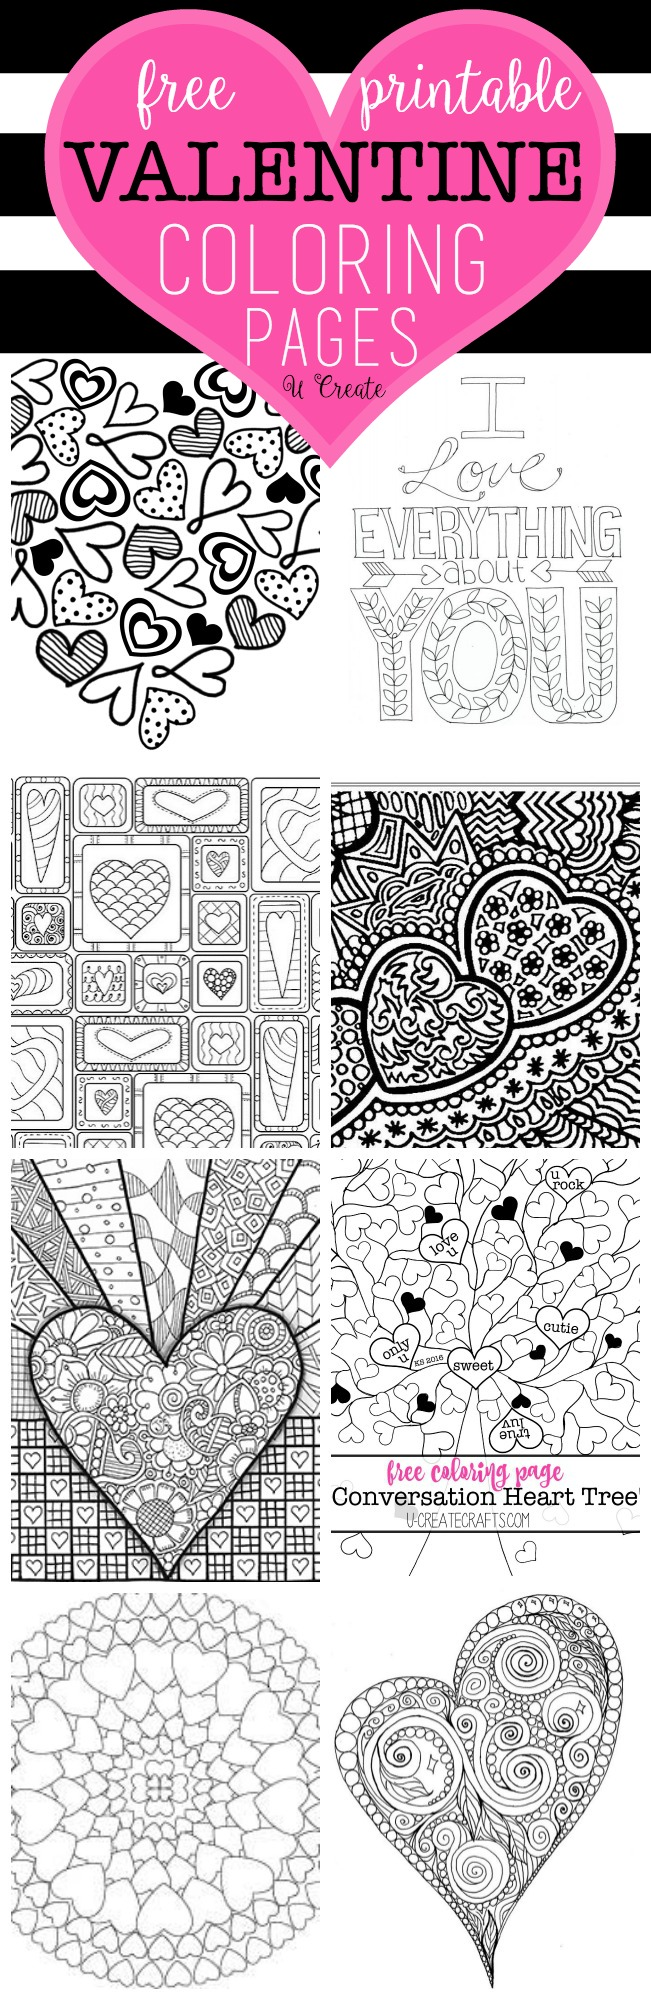 Free Valentine Coloring Pages - U Create